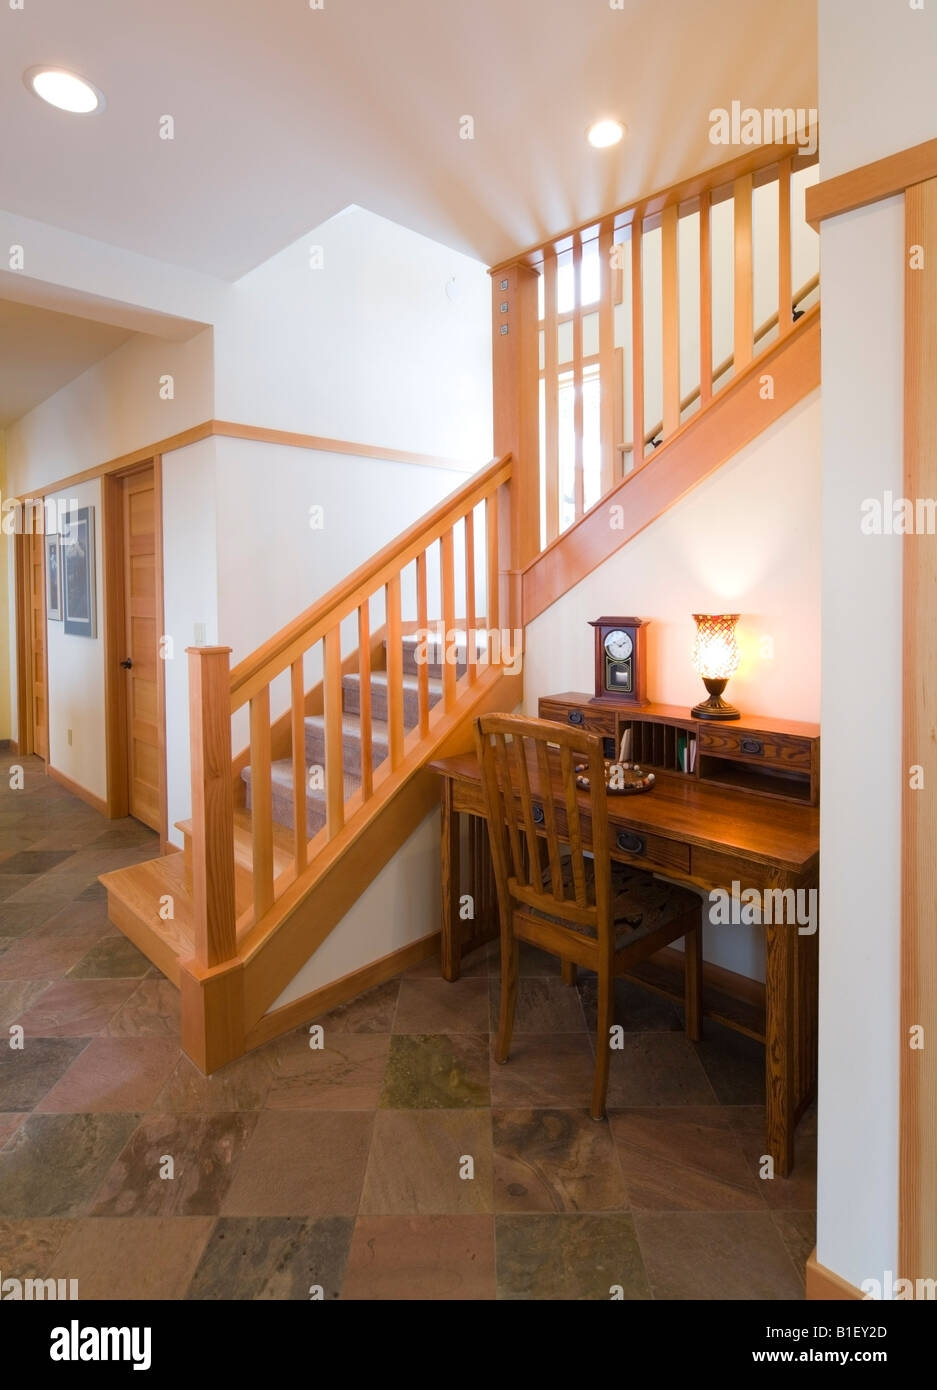 Inside View Of A Staircase In A Contemporary Craftsman Style Home | Stairs Style For Home | Creative | Inside | Spiral | Country Cottage | Living Room